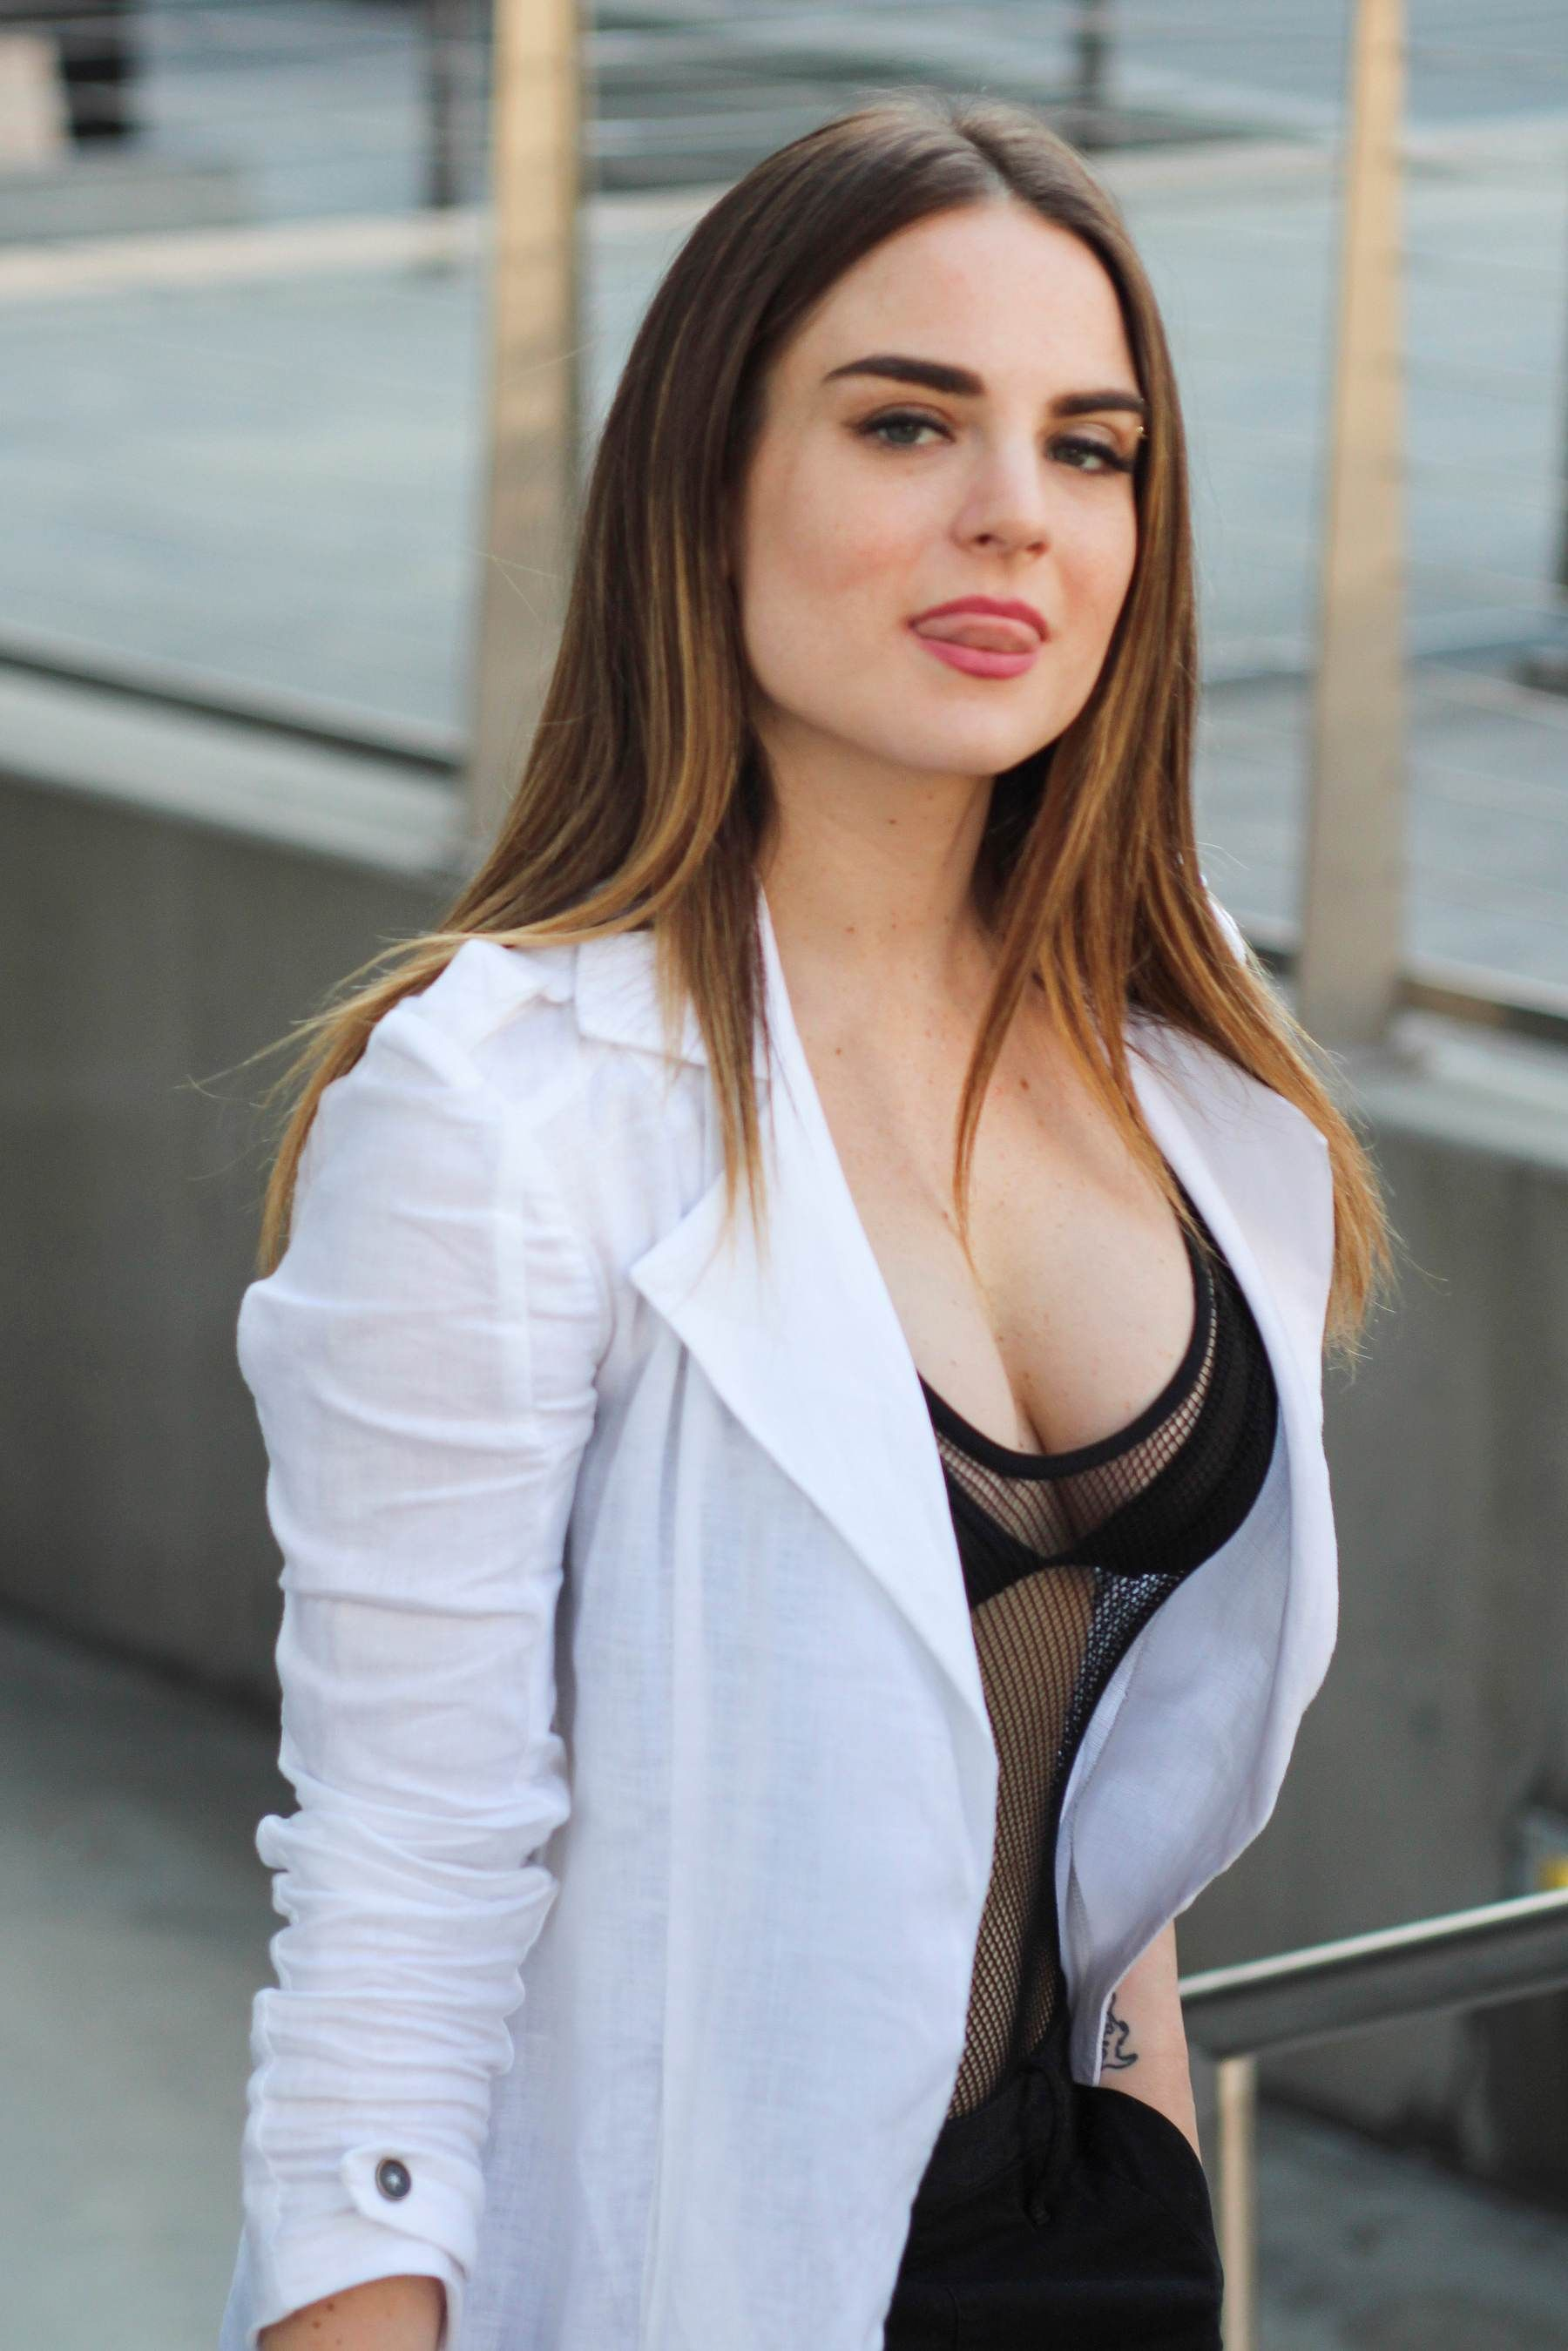 Cleavage JoJo Levesque nude photos 2019